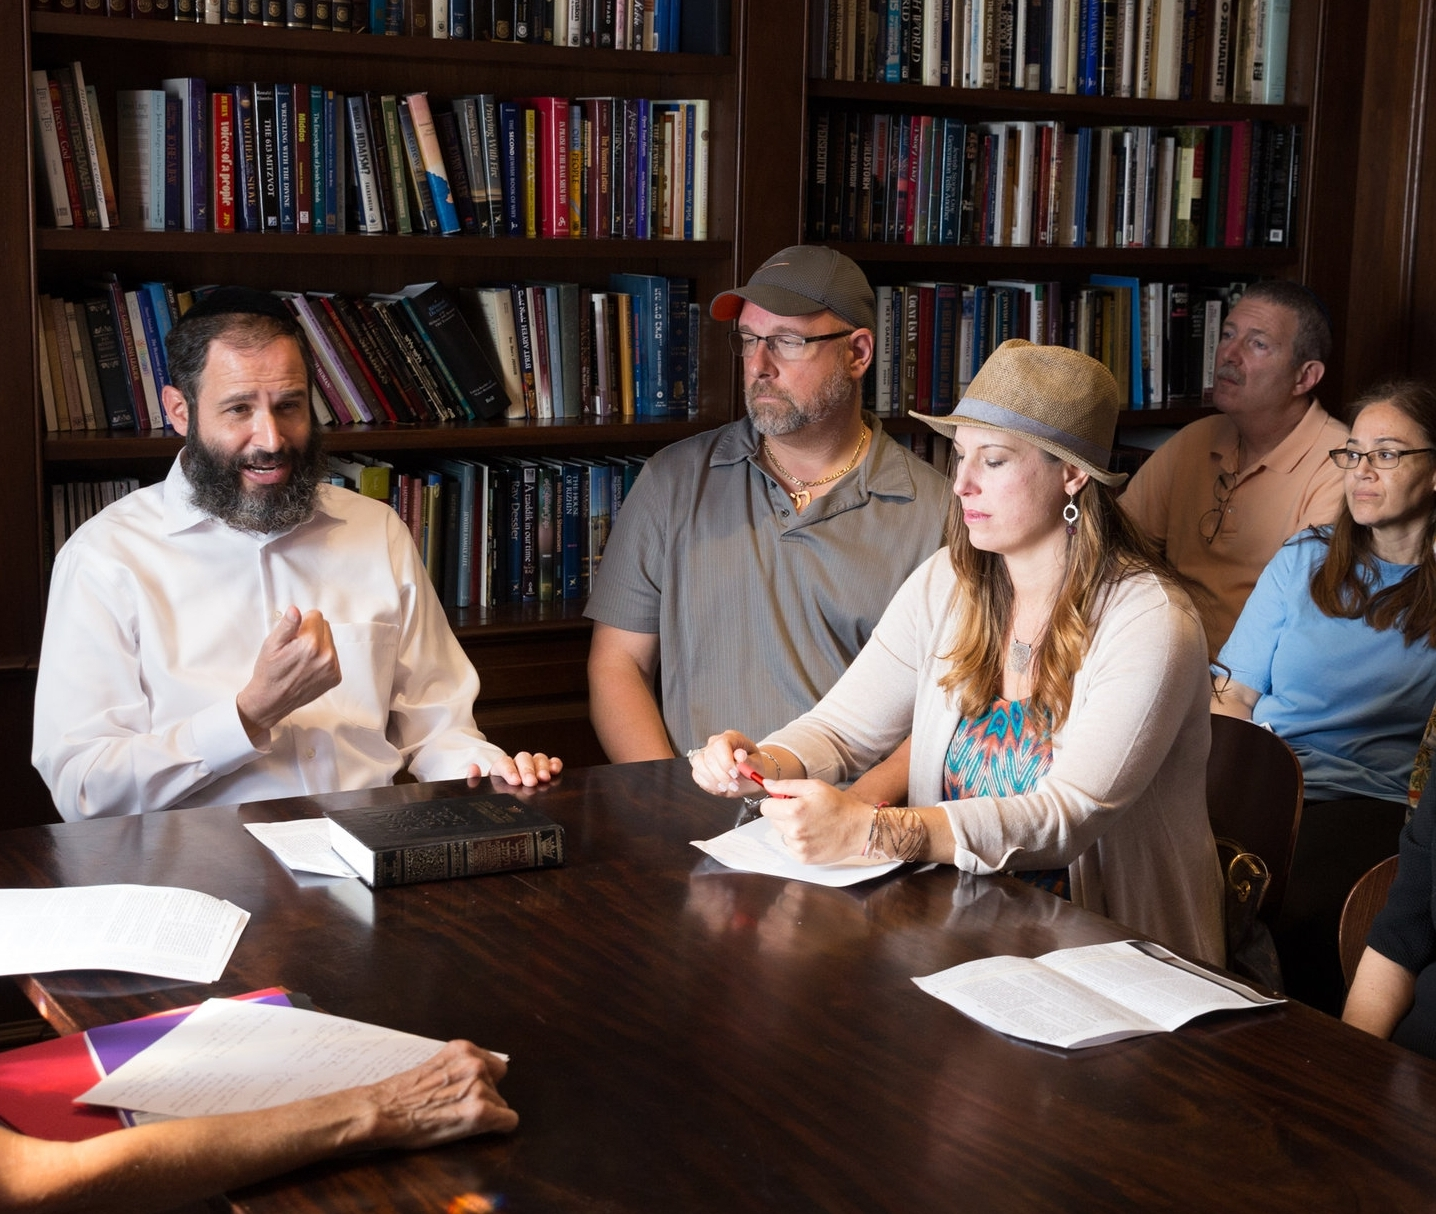 Talmudic Tales - THE MYSTERY, MAGIC AND MECHANICS OF MIDRASHSundays, 11:30 am - 12:30 pmParents of Hebrew School and Maimonides students and the community are invited to gain insight into Midrash and the eternal truths and values they convey.